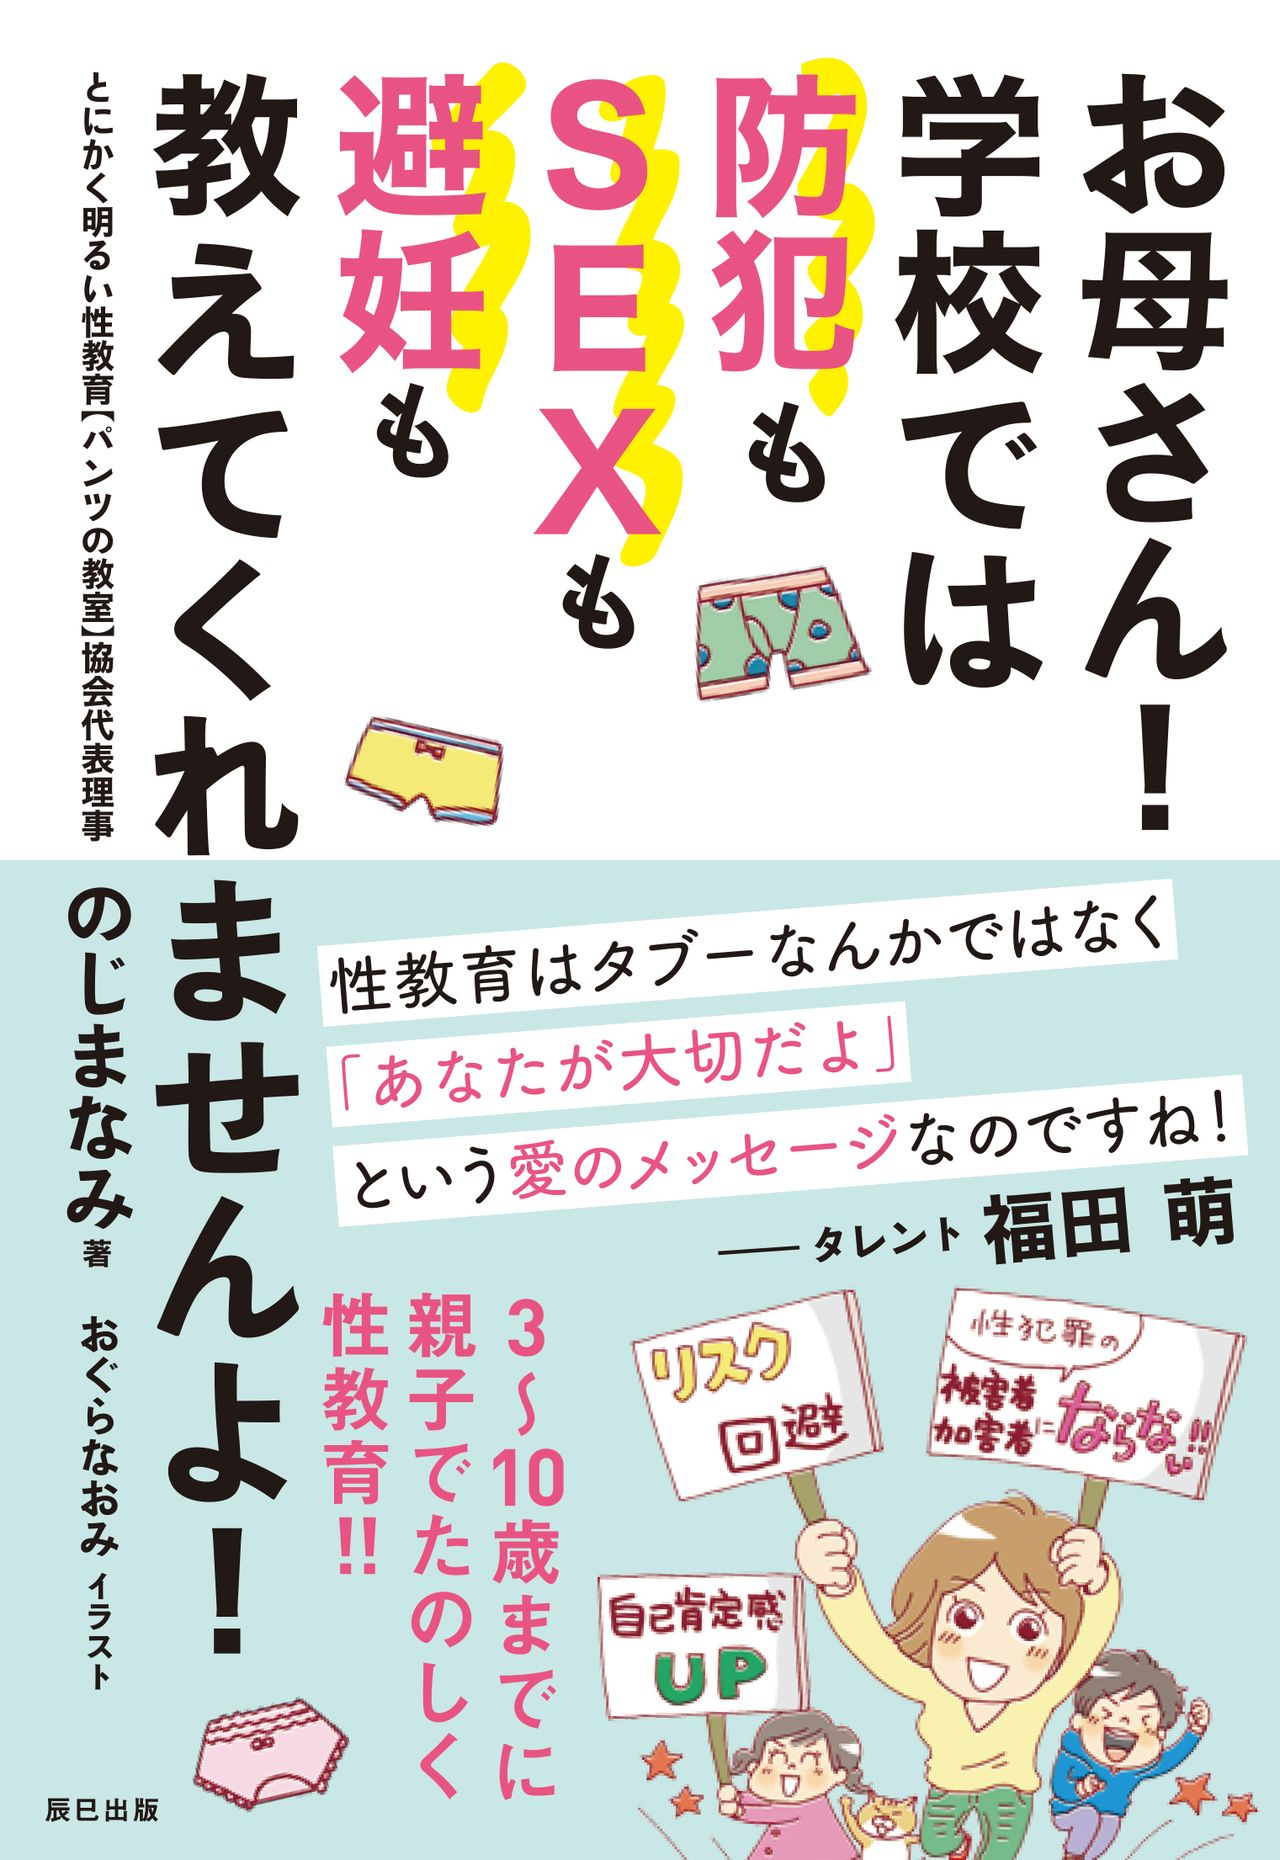 Nojima Nami's Okāsan! Gakkō de wa bōhan mo sex mo hinin mo oshiete kuremasen yo! (Mom! Schools Won't Teach Your Kid About Sex, Contraception, or How to Stay Safe!) is a guide for parents who want to provide their children with the sex-ed that Japan's schools do not.